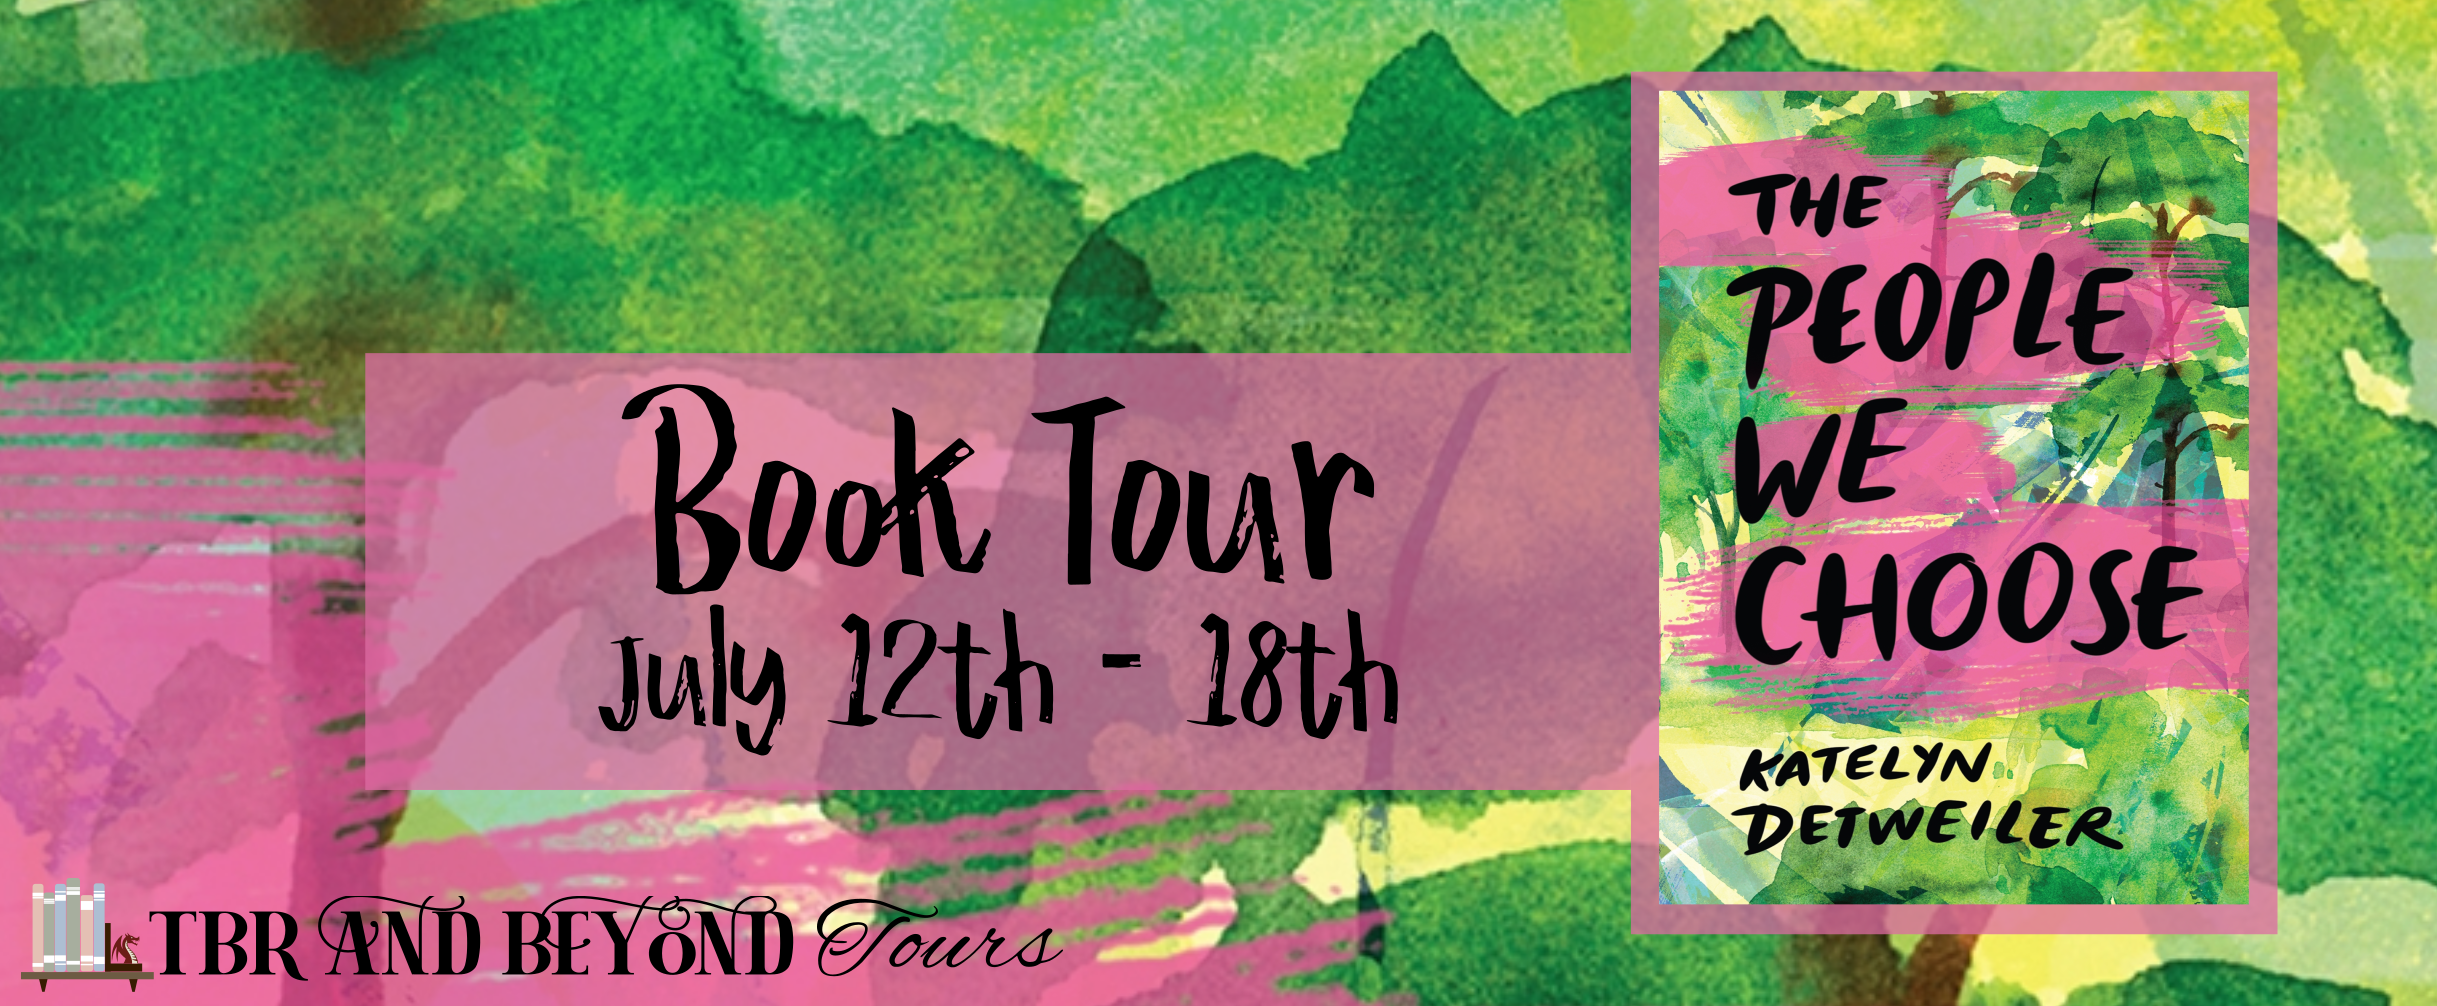 Blog Tour: The People We Choose by Katelyn Detweiler (Interview + Aesthetic Board!)